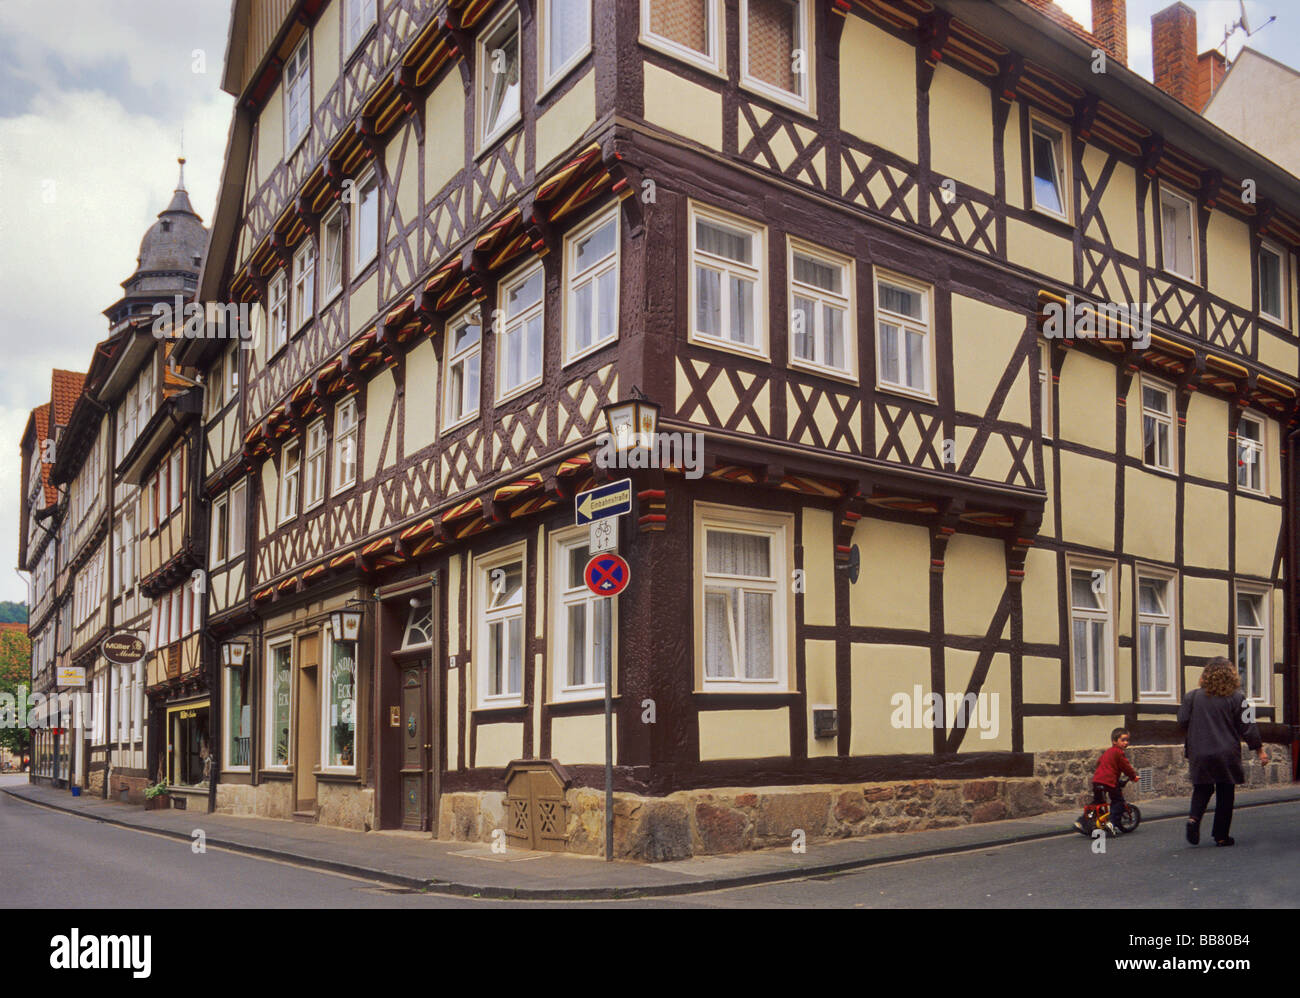 Gabled half timbered houses at Hinter der Stadtmauer street in Hann Münden, Lower Saxony, Germany Stock Photo